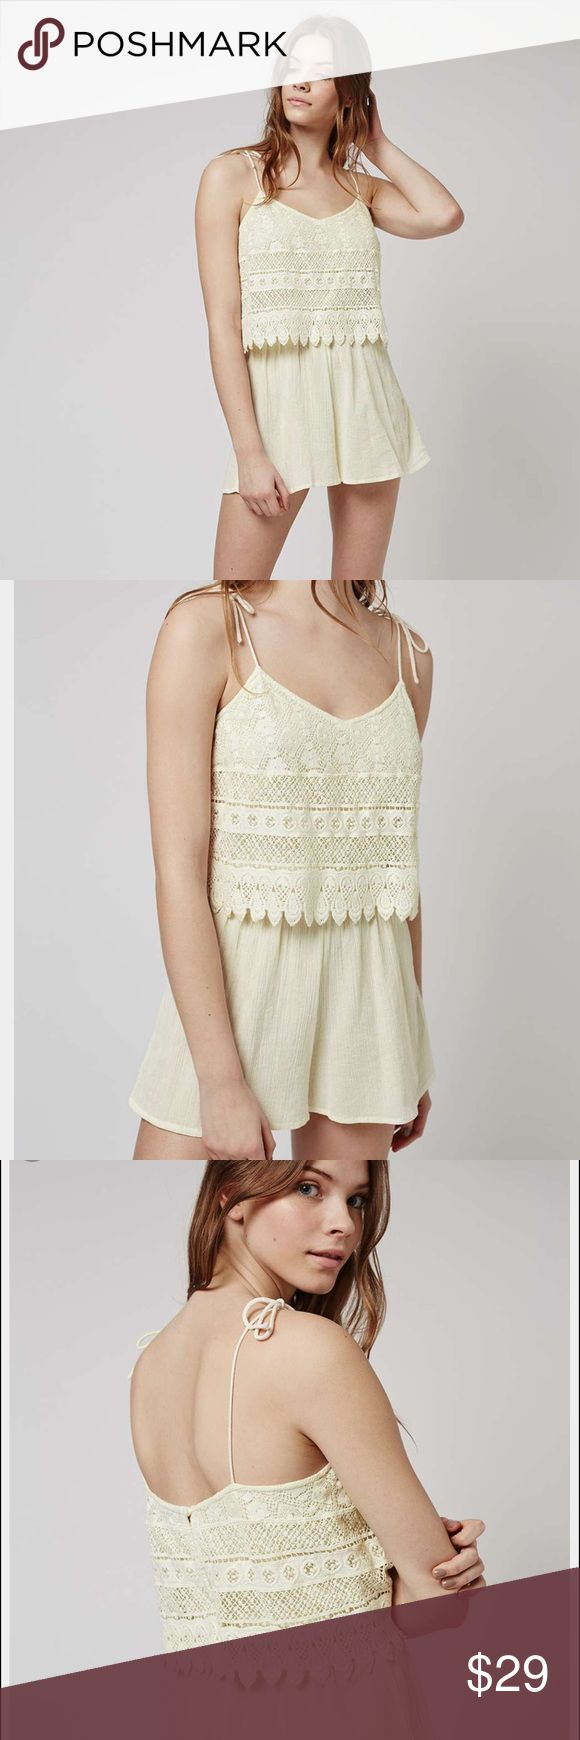 Topshop Crochet Romper Catch the sun in this soft cream playsuit. Crafted from a soft crepe jersey, we adore the pretty crochet trim overlay. Featuring a flowing silhouette and delicate tie-up straps it's perfect for complimenting sun-kissed skin. 100% Cotton. Machine wash. Topshop Pants Jumpsuits & Rompers